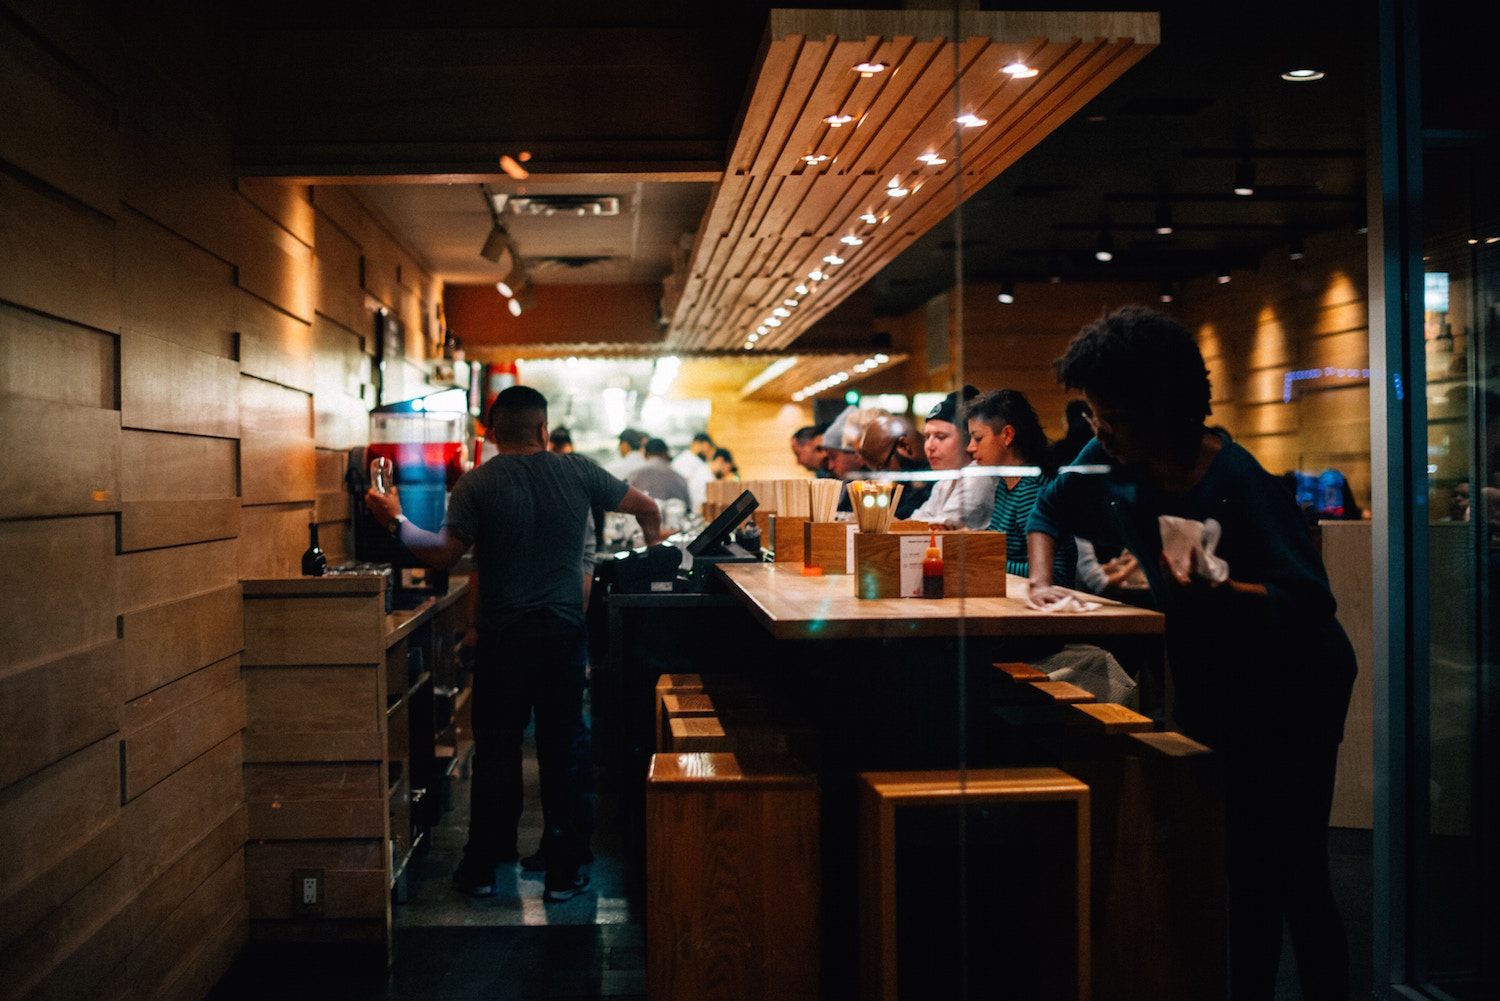 Ramen restaurant with bar seating and solo diners